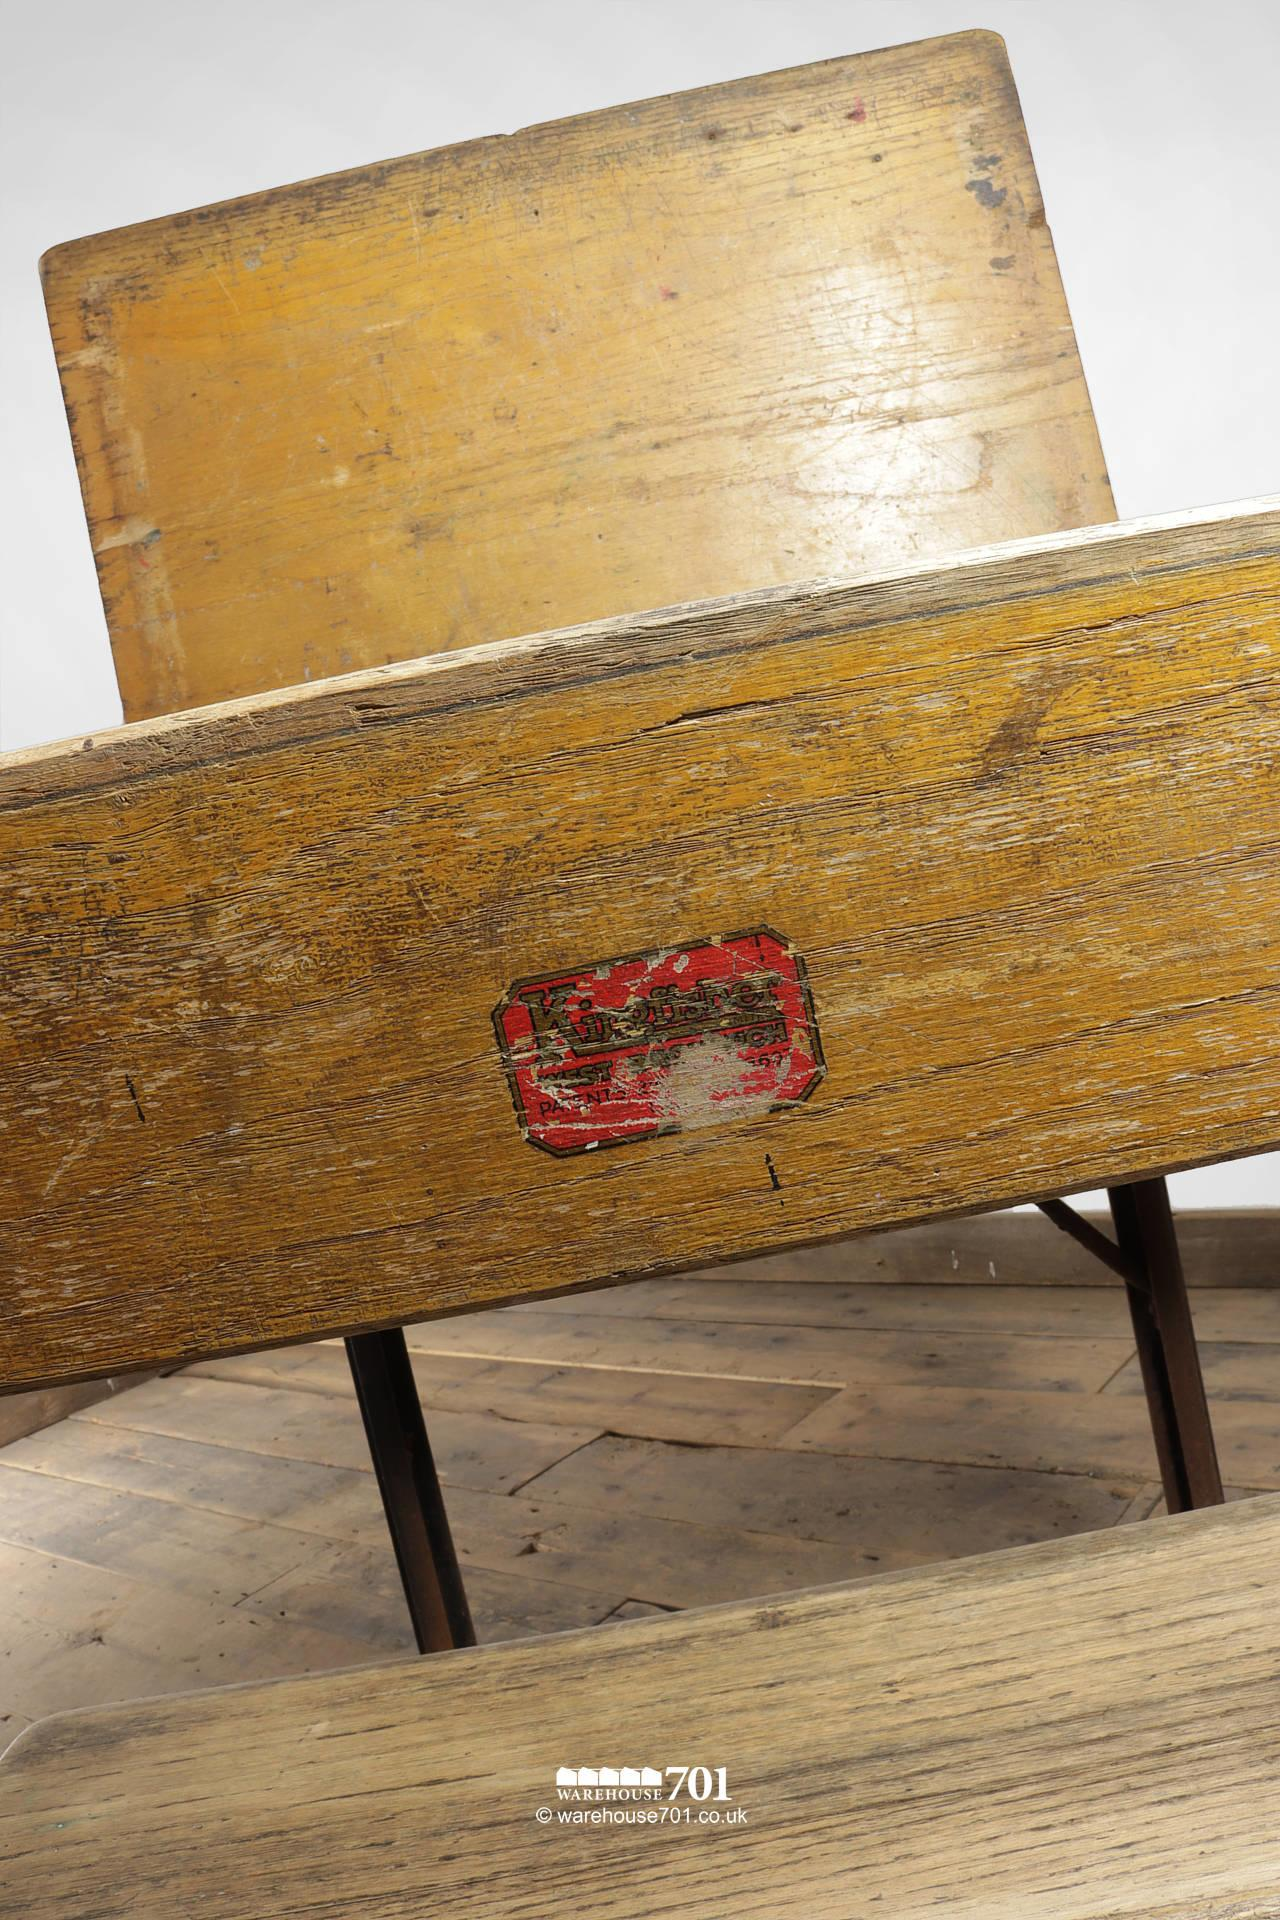 Reclaimed Wooden Childs School Desk and Seat #4